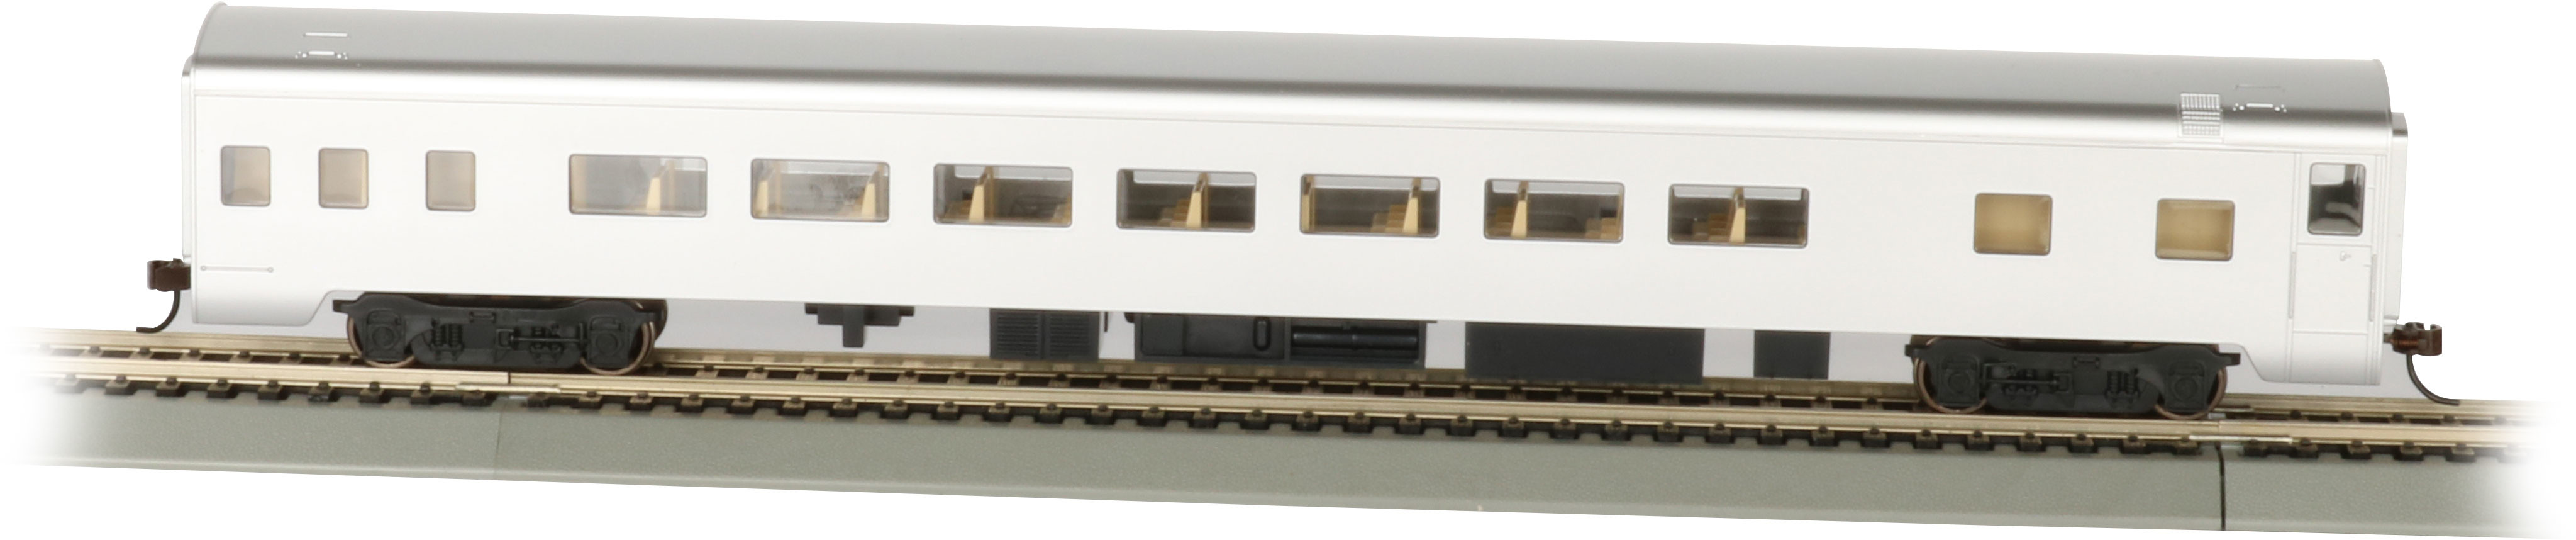 Bachmann 14208 USRA 85' Smooth-side Image